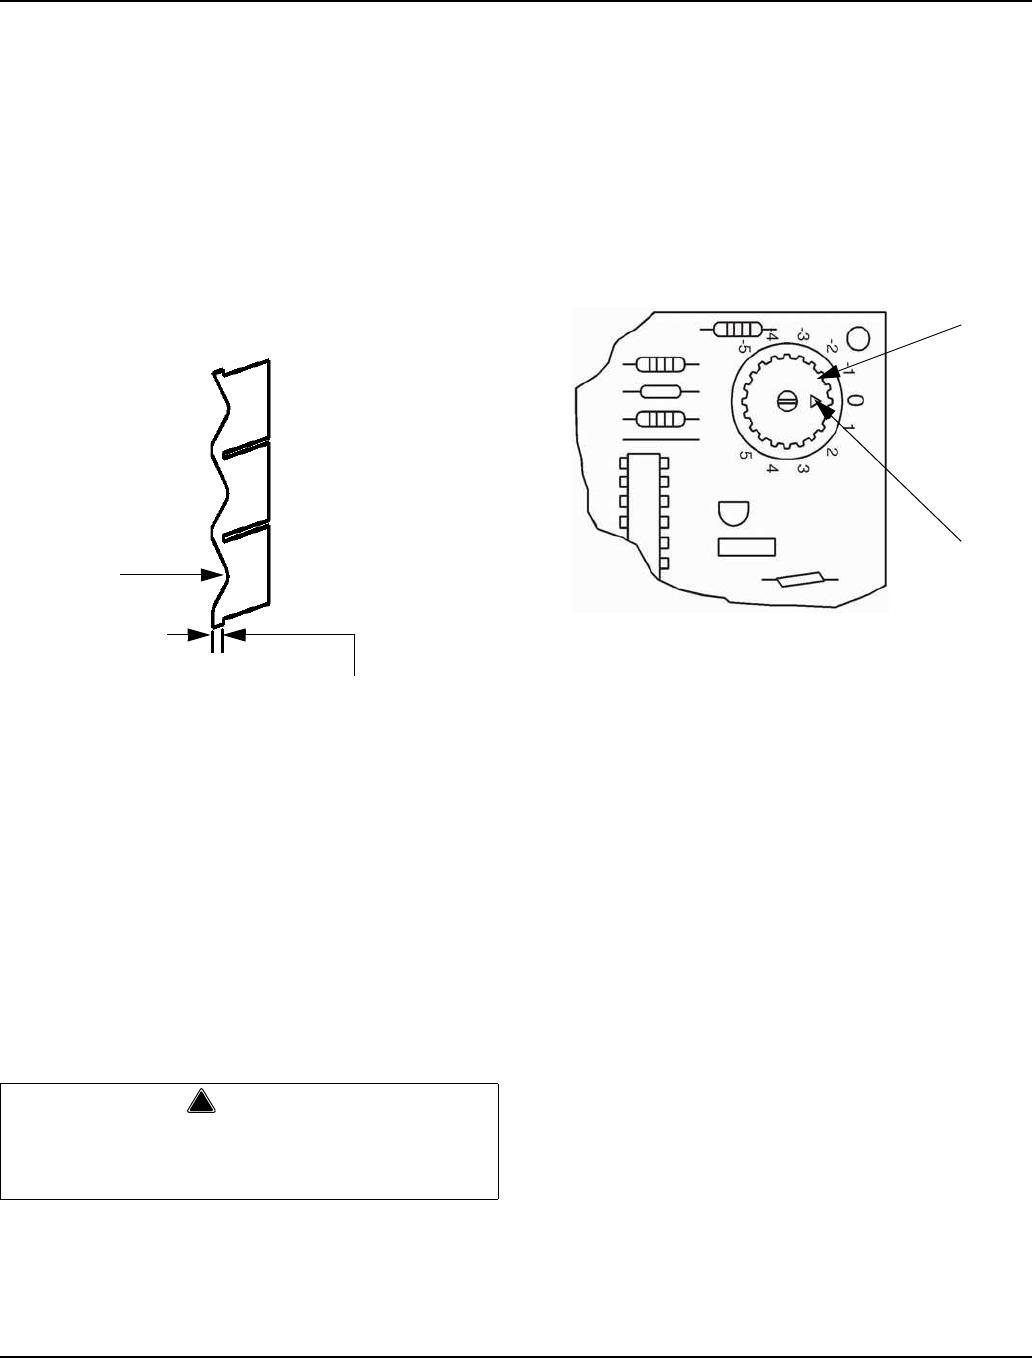 Manitowoc Qm Ice Maker Wiring Diagram For on